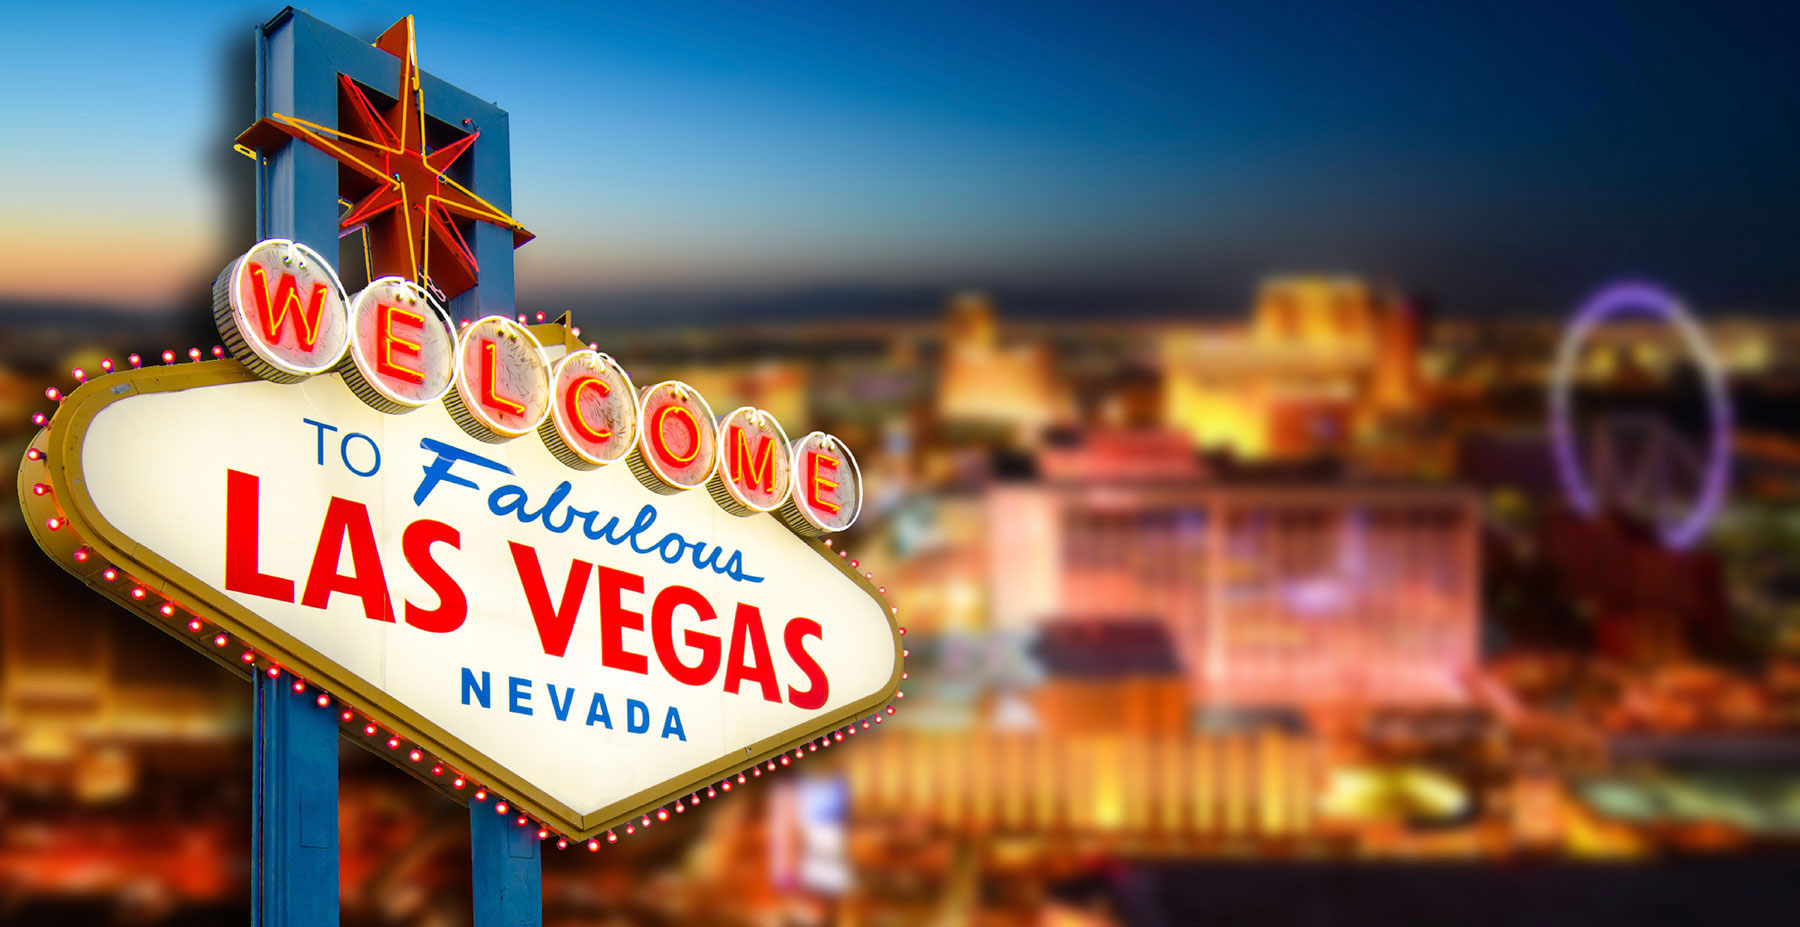 Where to stay, dine and what to do on a Las Vegas family vacation.